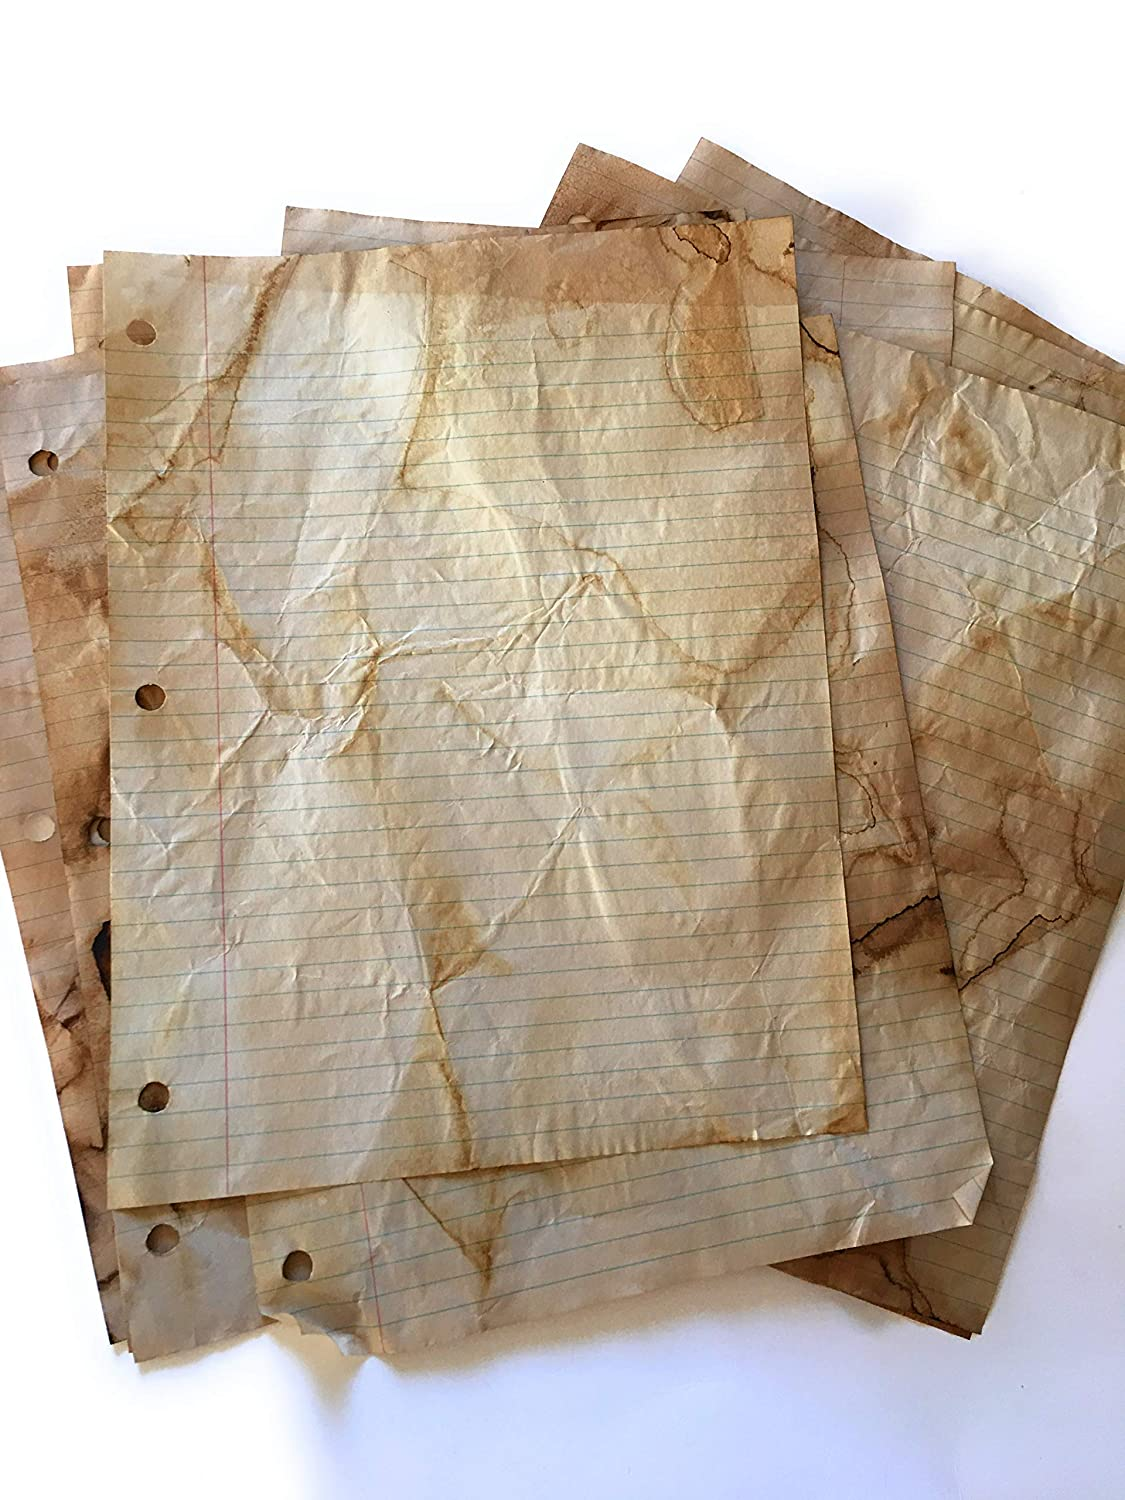 8.5 x 11 inches Crafting Perfect for Printing Invitations Certificate Copying,Weddings Old Fashion Hand dyed,Tea Stained,20 Pieces LINED Vintage Antique Design Double Sided Stationery Paper